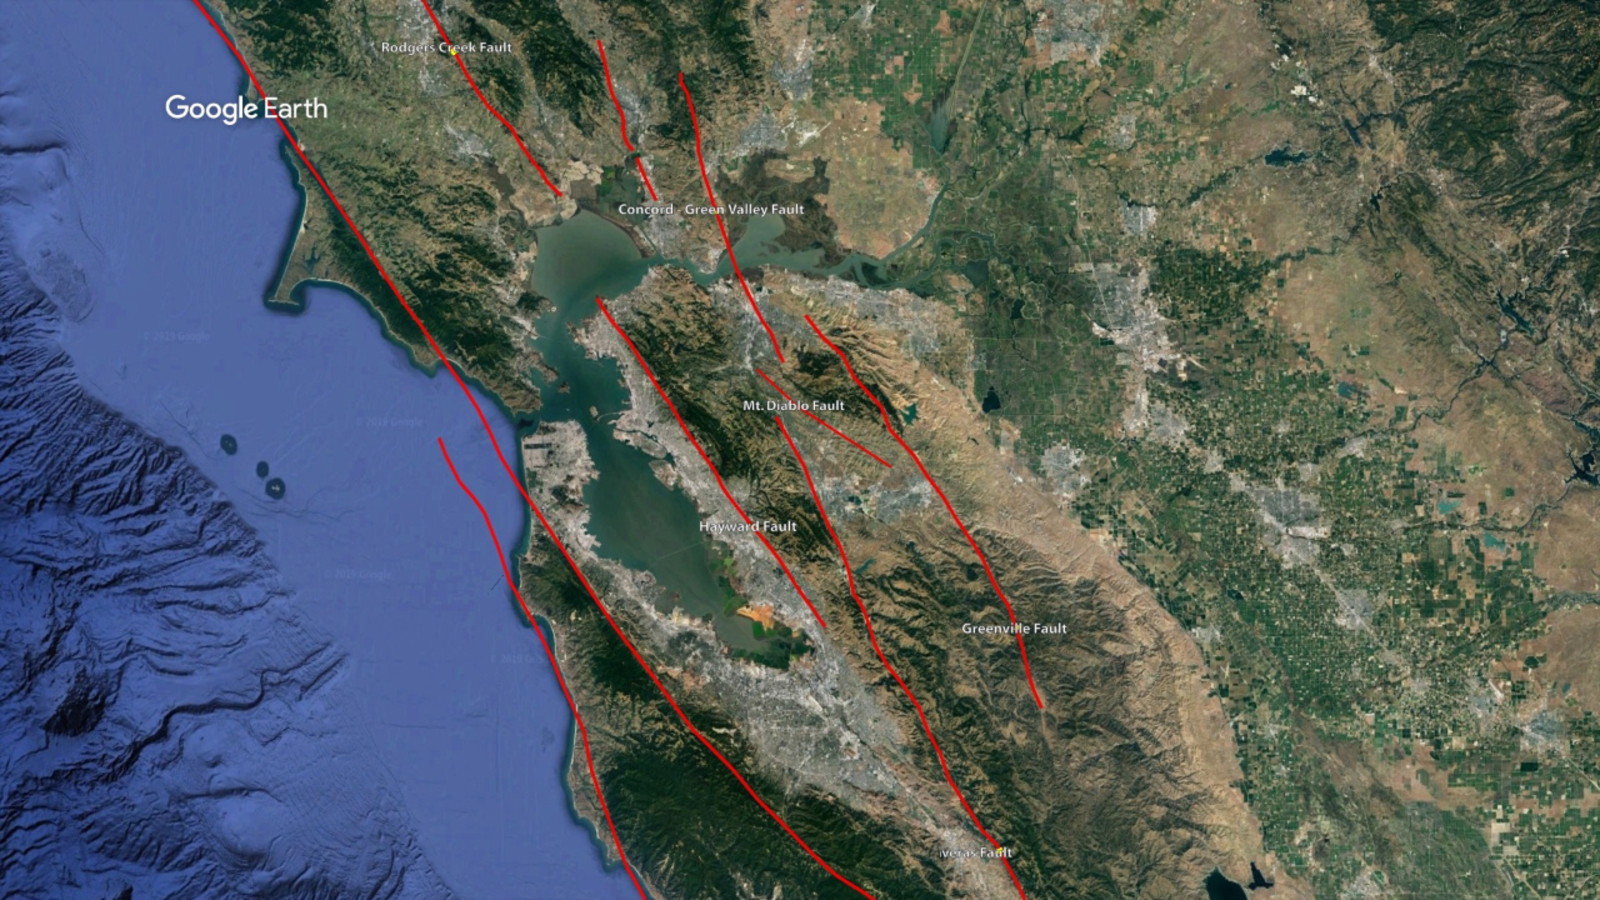 MAP: Significant Bay Area faults and strong earthquakes